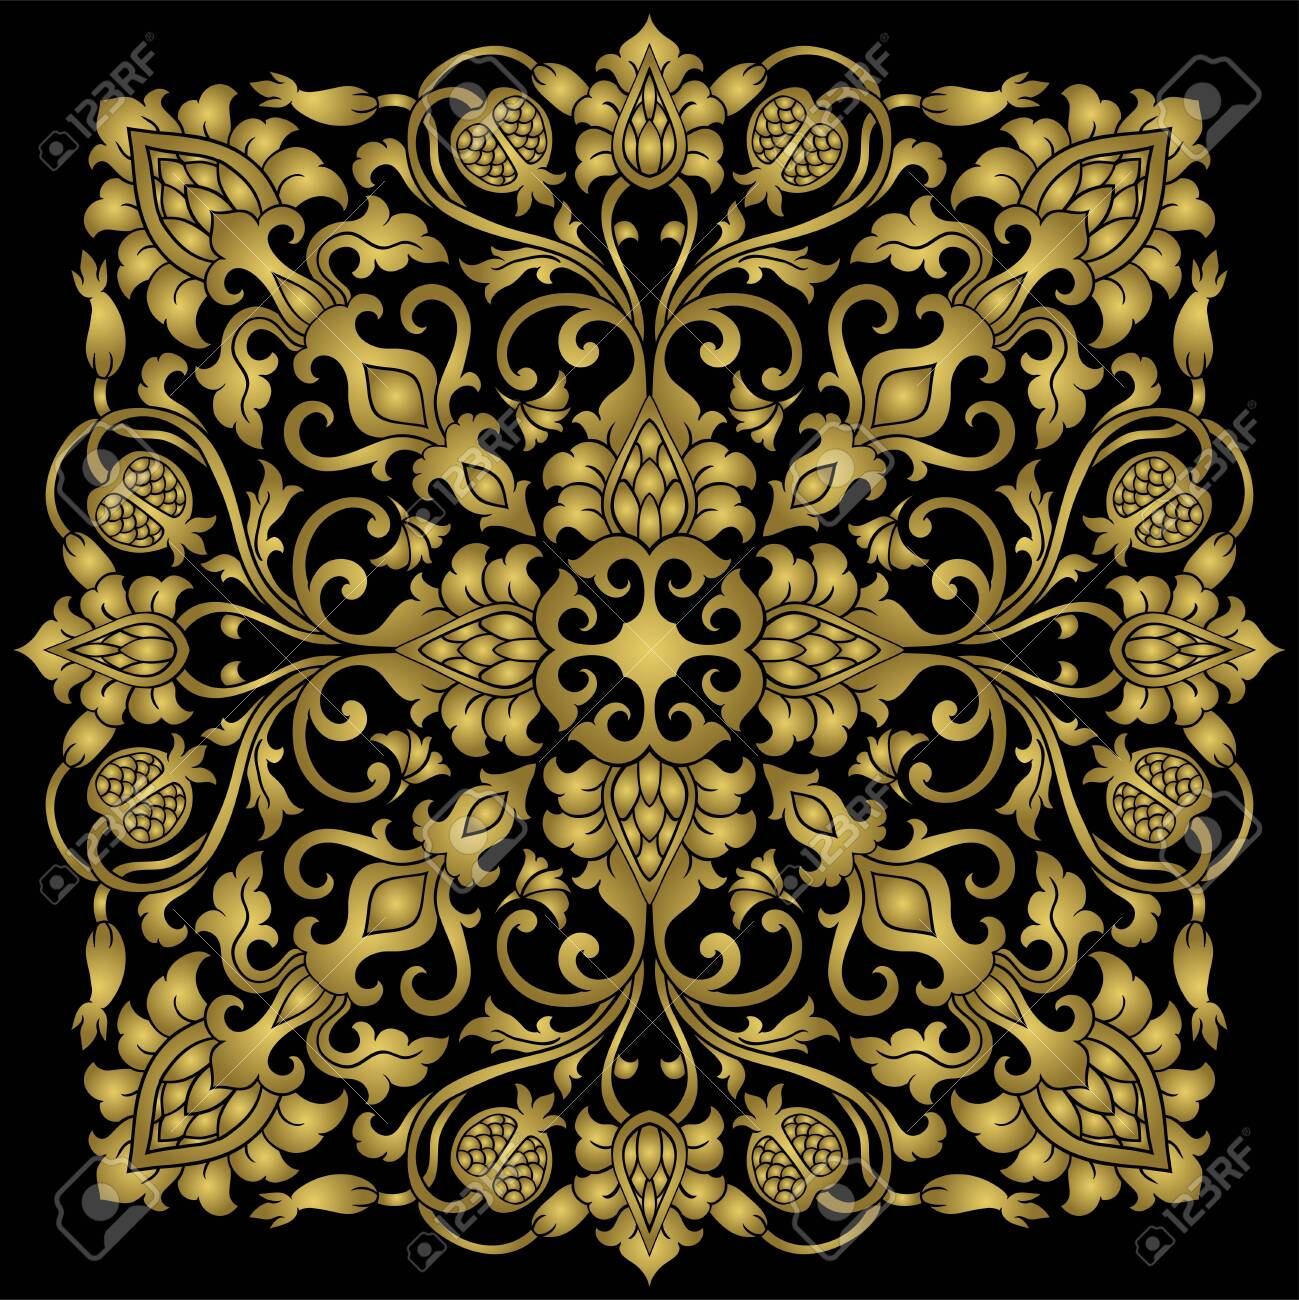 Floral Medallion For Design Template For Carpet Wallpaper Royalty Free Cliparts Vectors And Stock Illustration Image 138322239